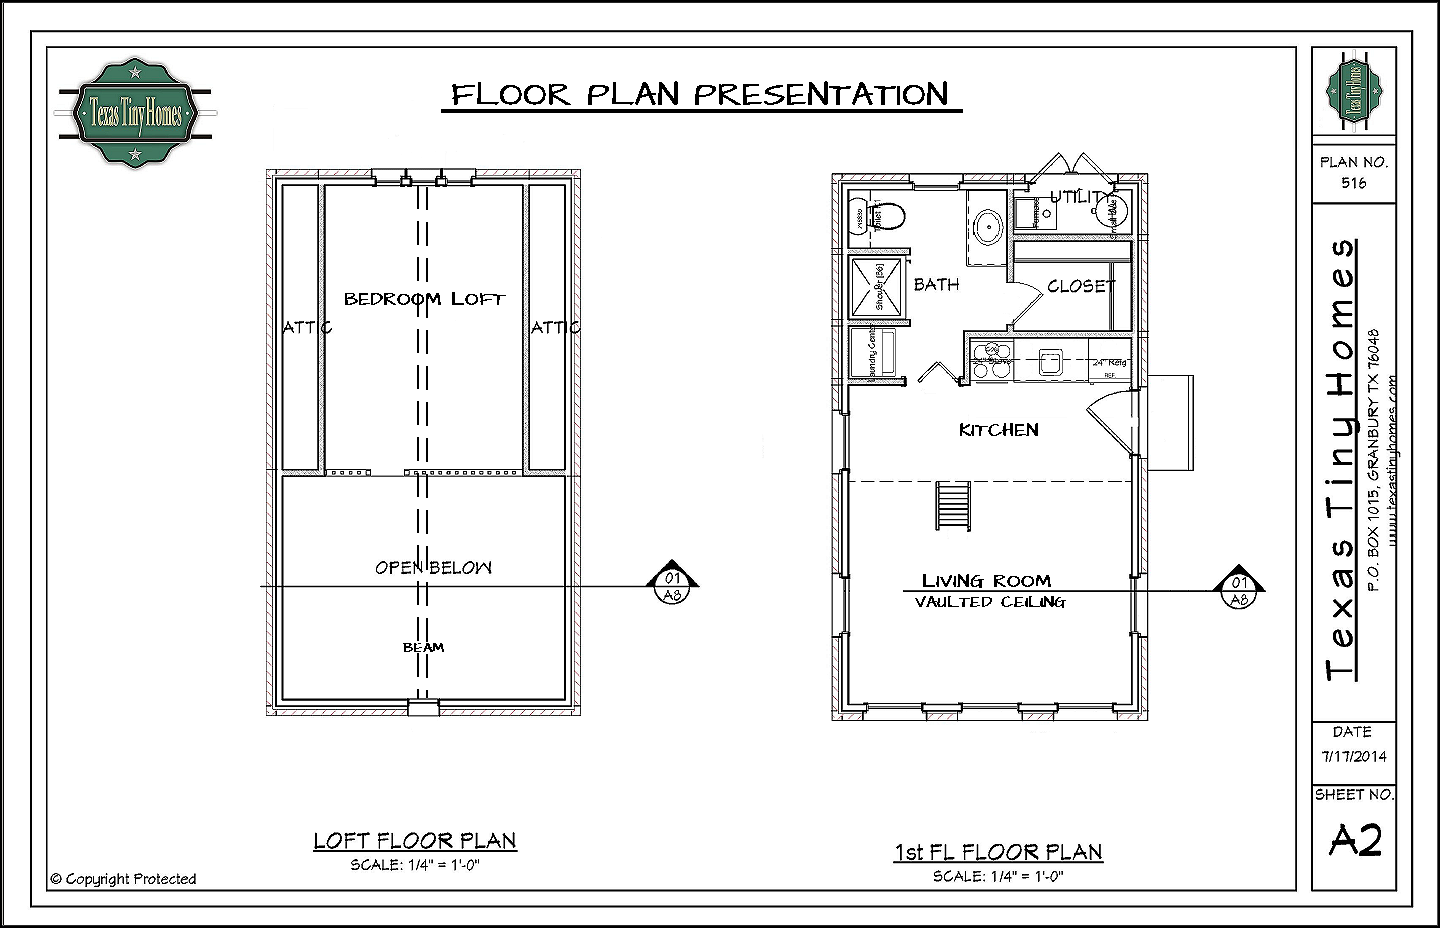 Texas tiny homes plan 516 for Small house design with floor plan